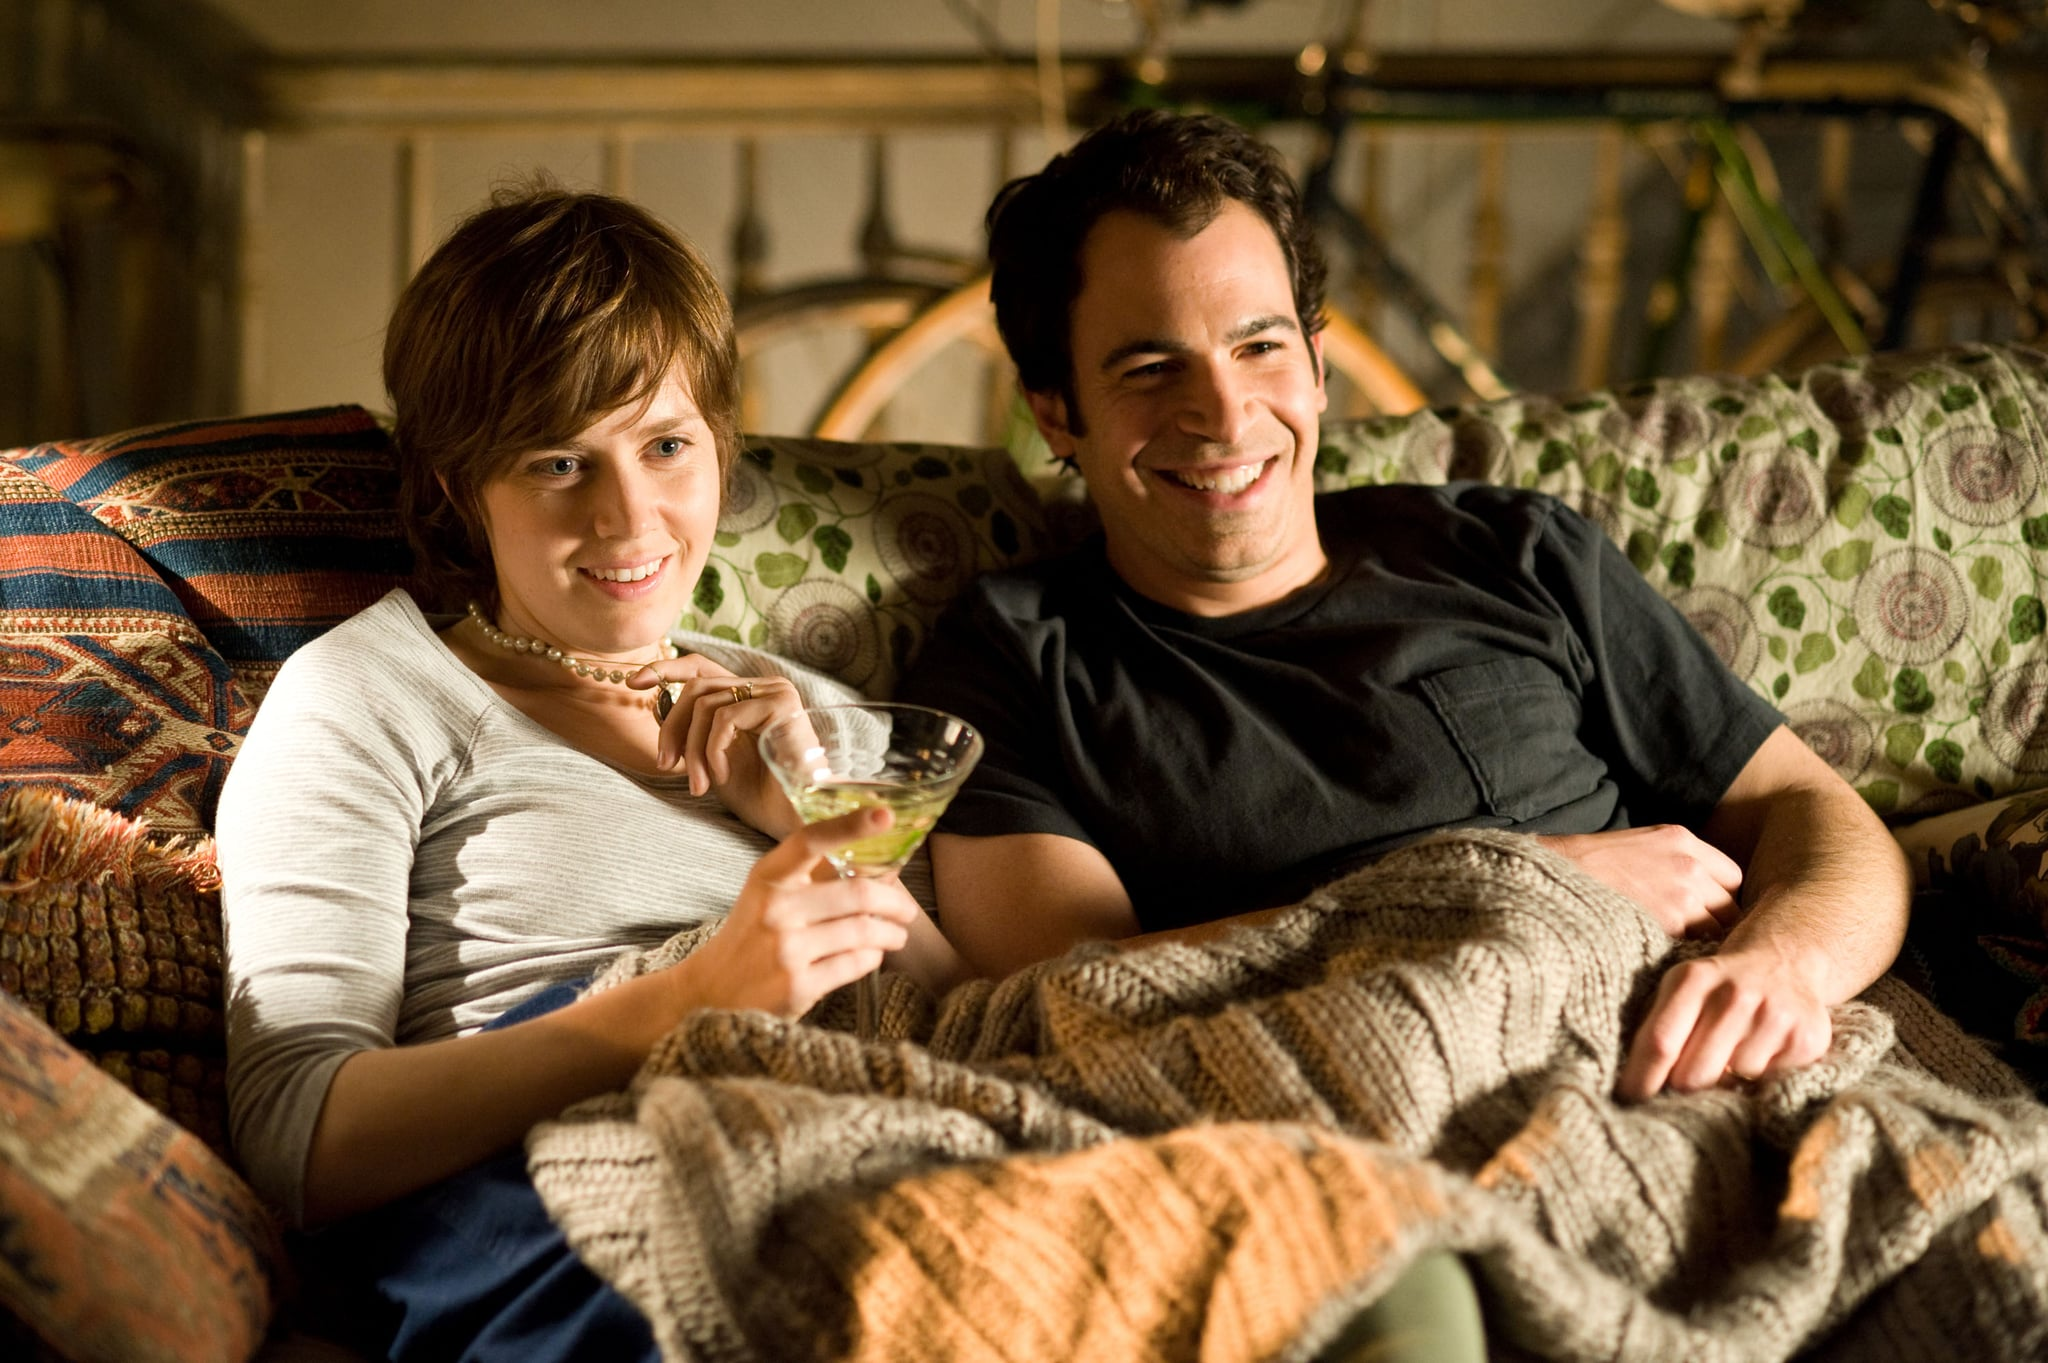 JULIE & JULIA, from left: Amy Adams, Chris Messina, 2009. Ph: Jonathan Wenk/Columbia Pictures/Courtesy Everett Collection